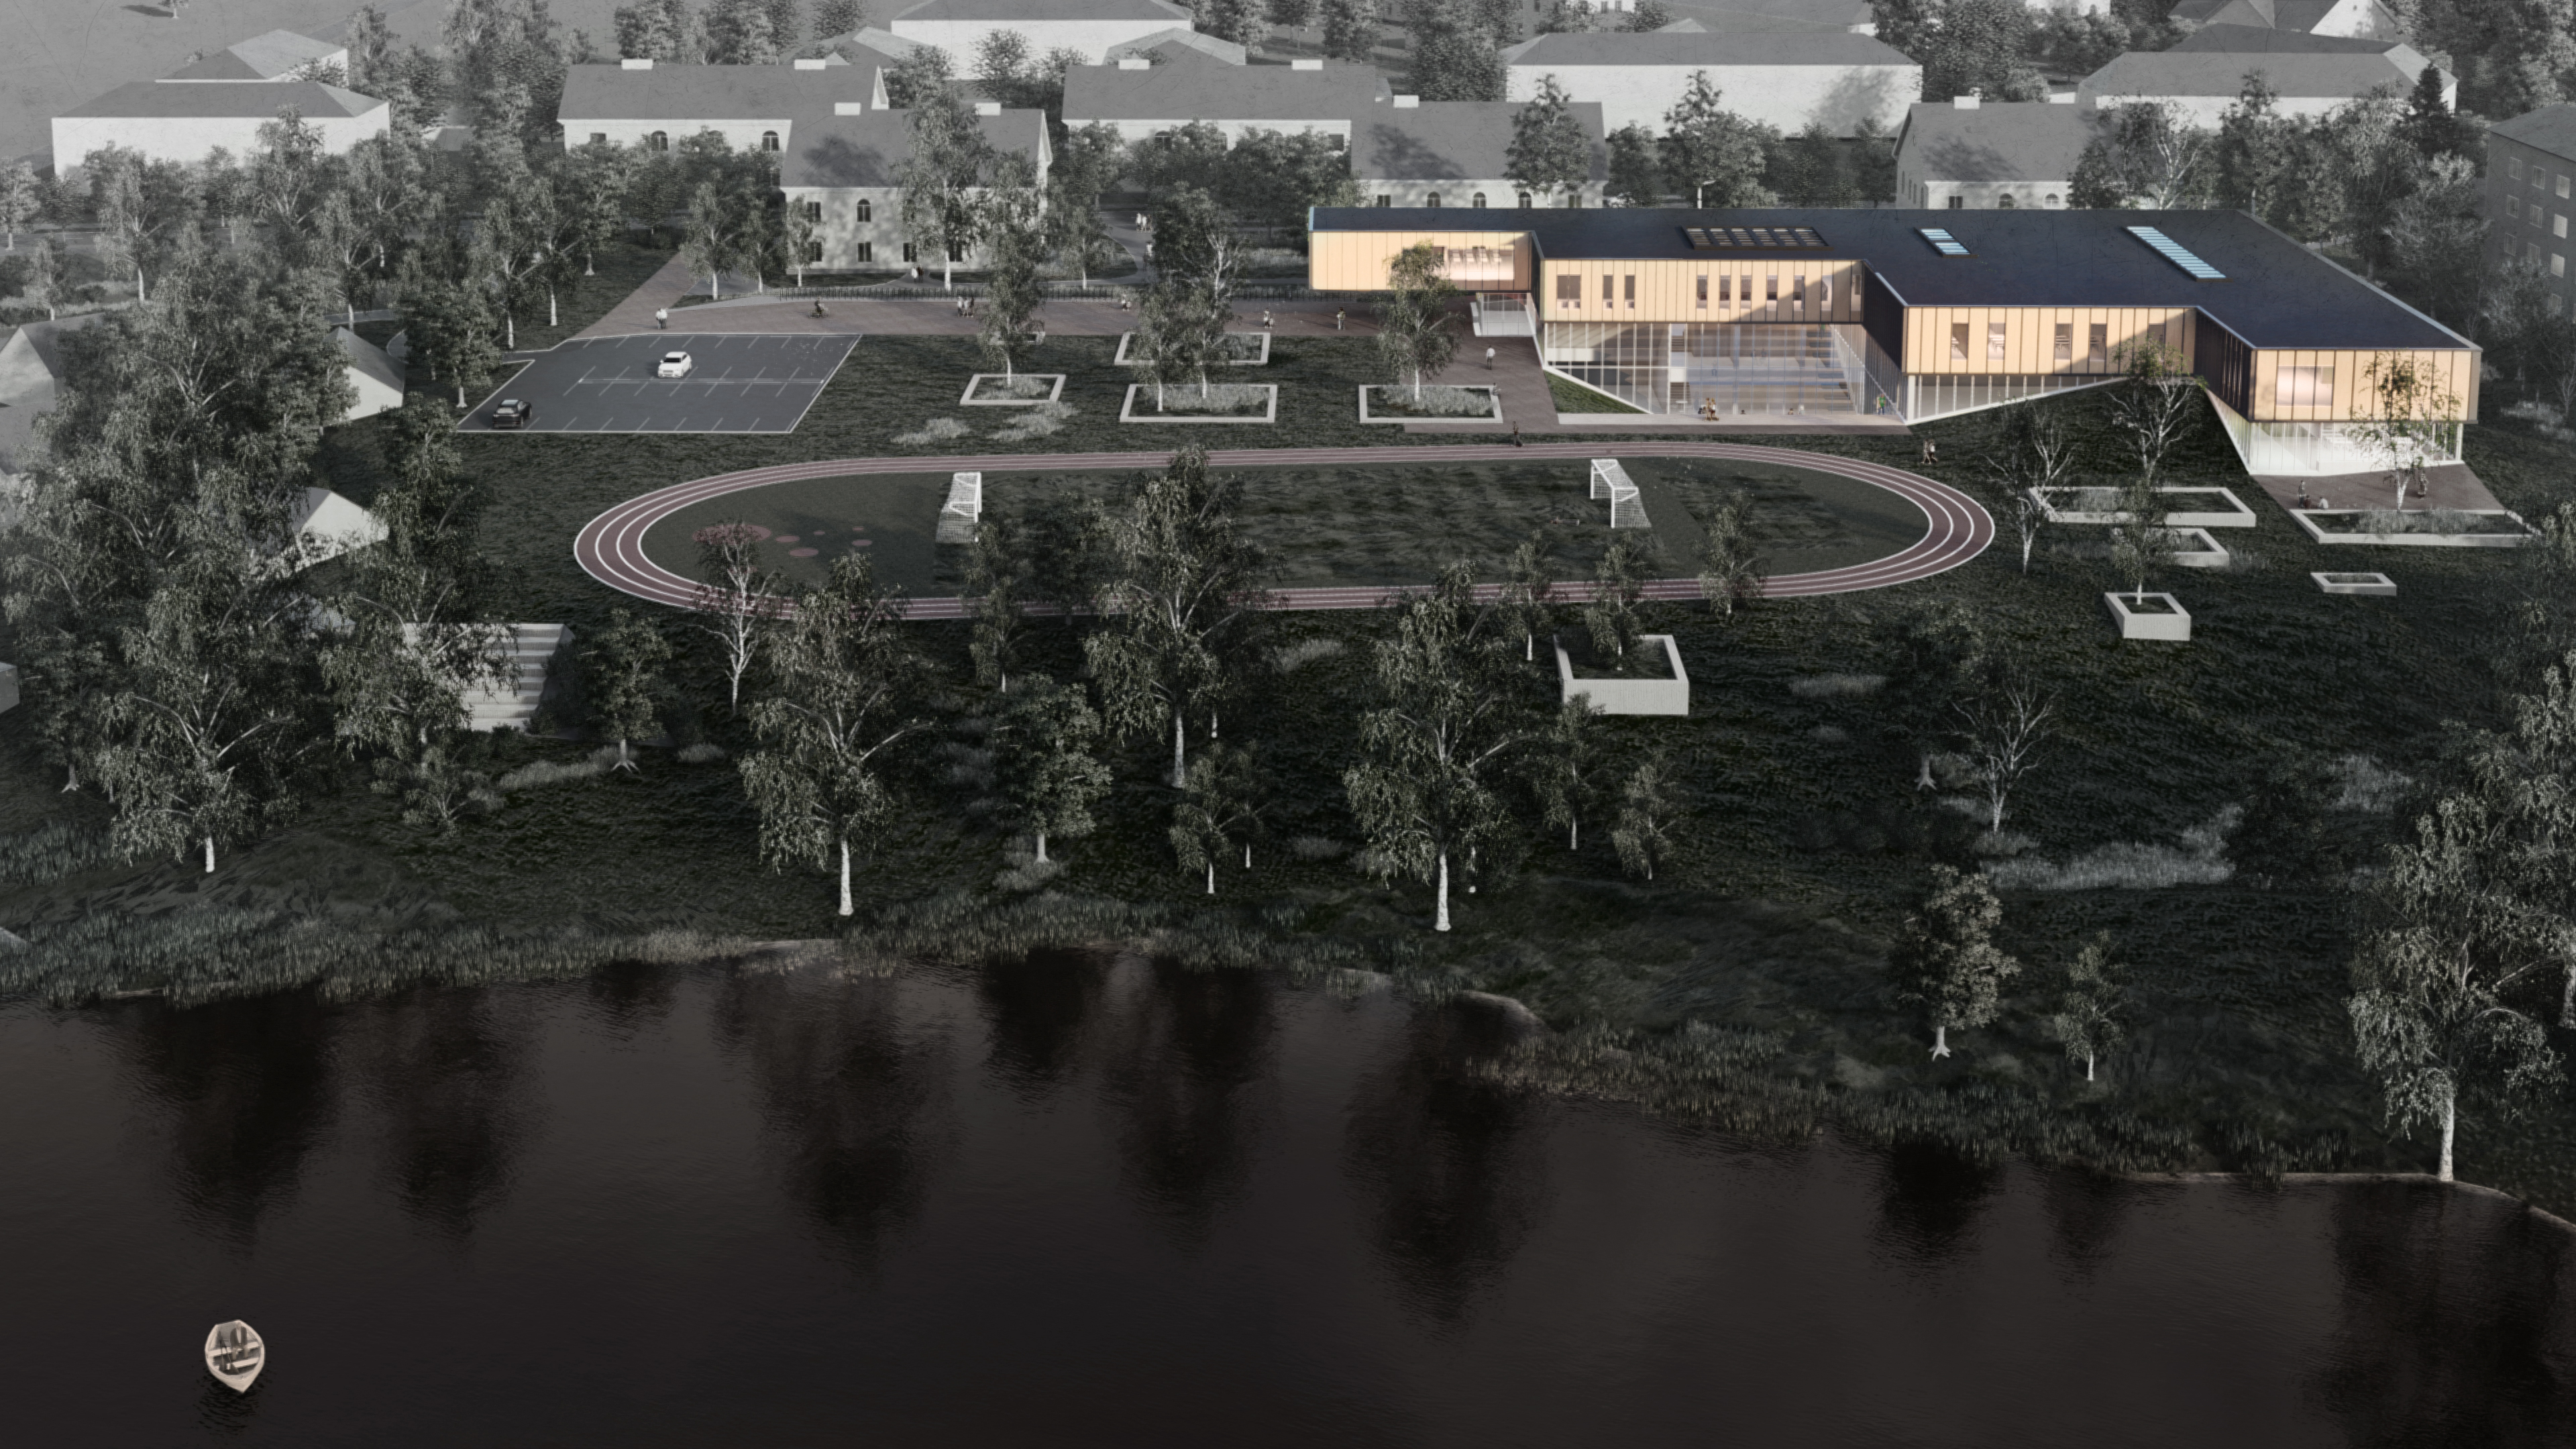 2020 Sillamäe Elementary School part 2.